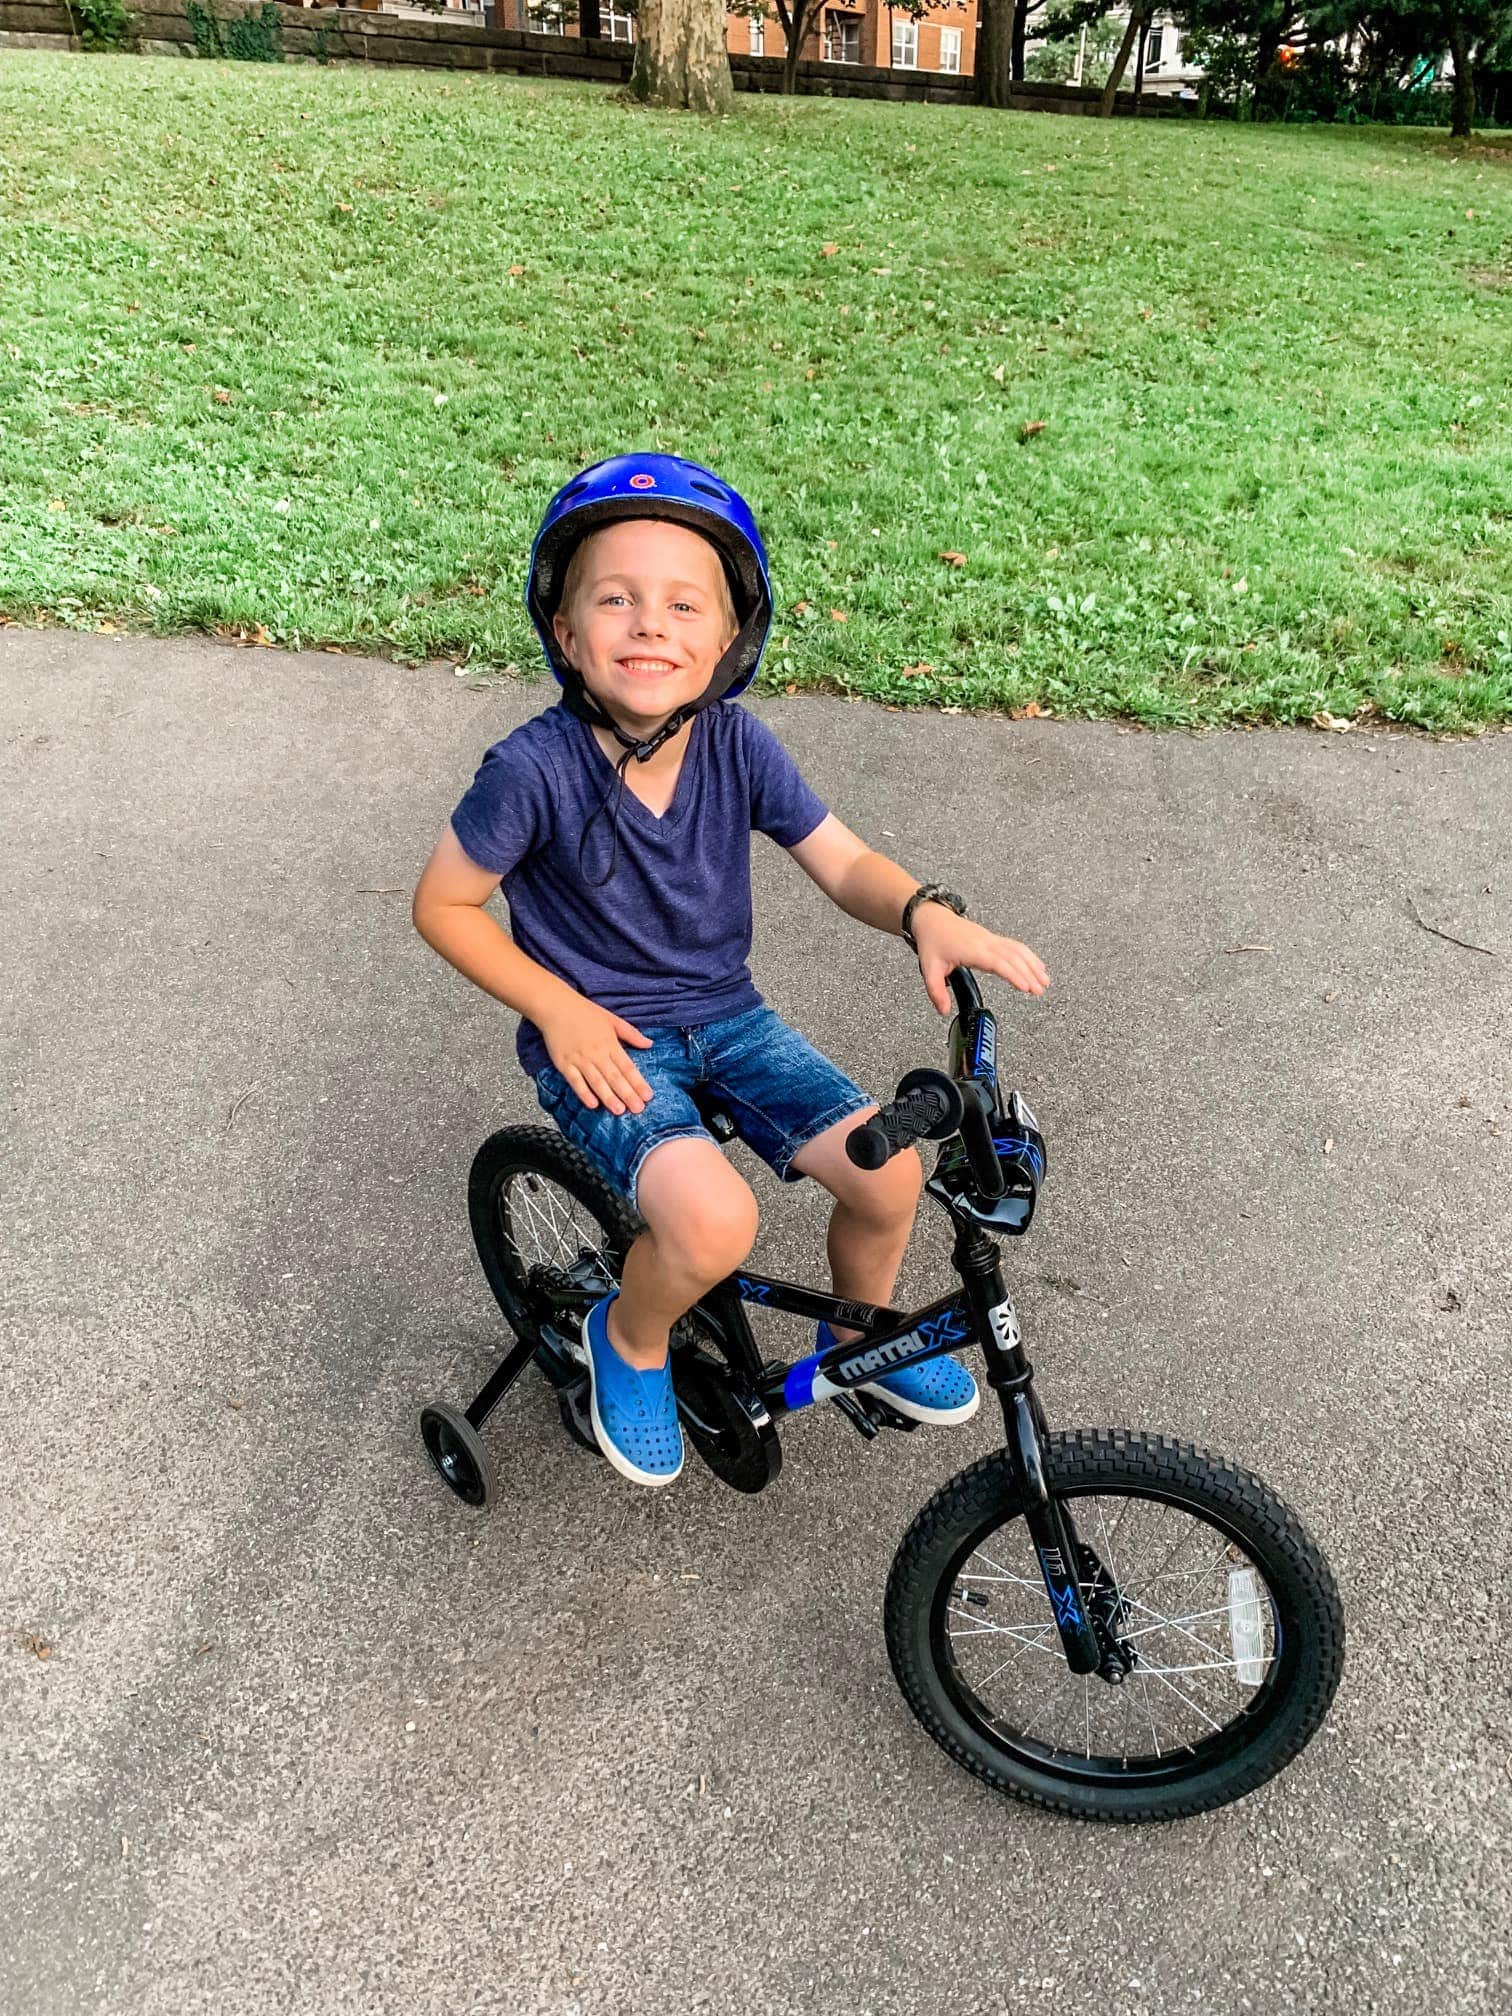 Blake wearing a helmet and riding a bicycle